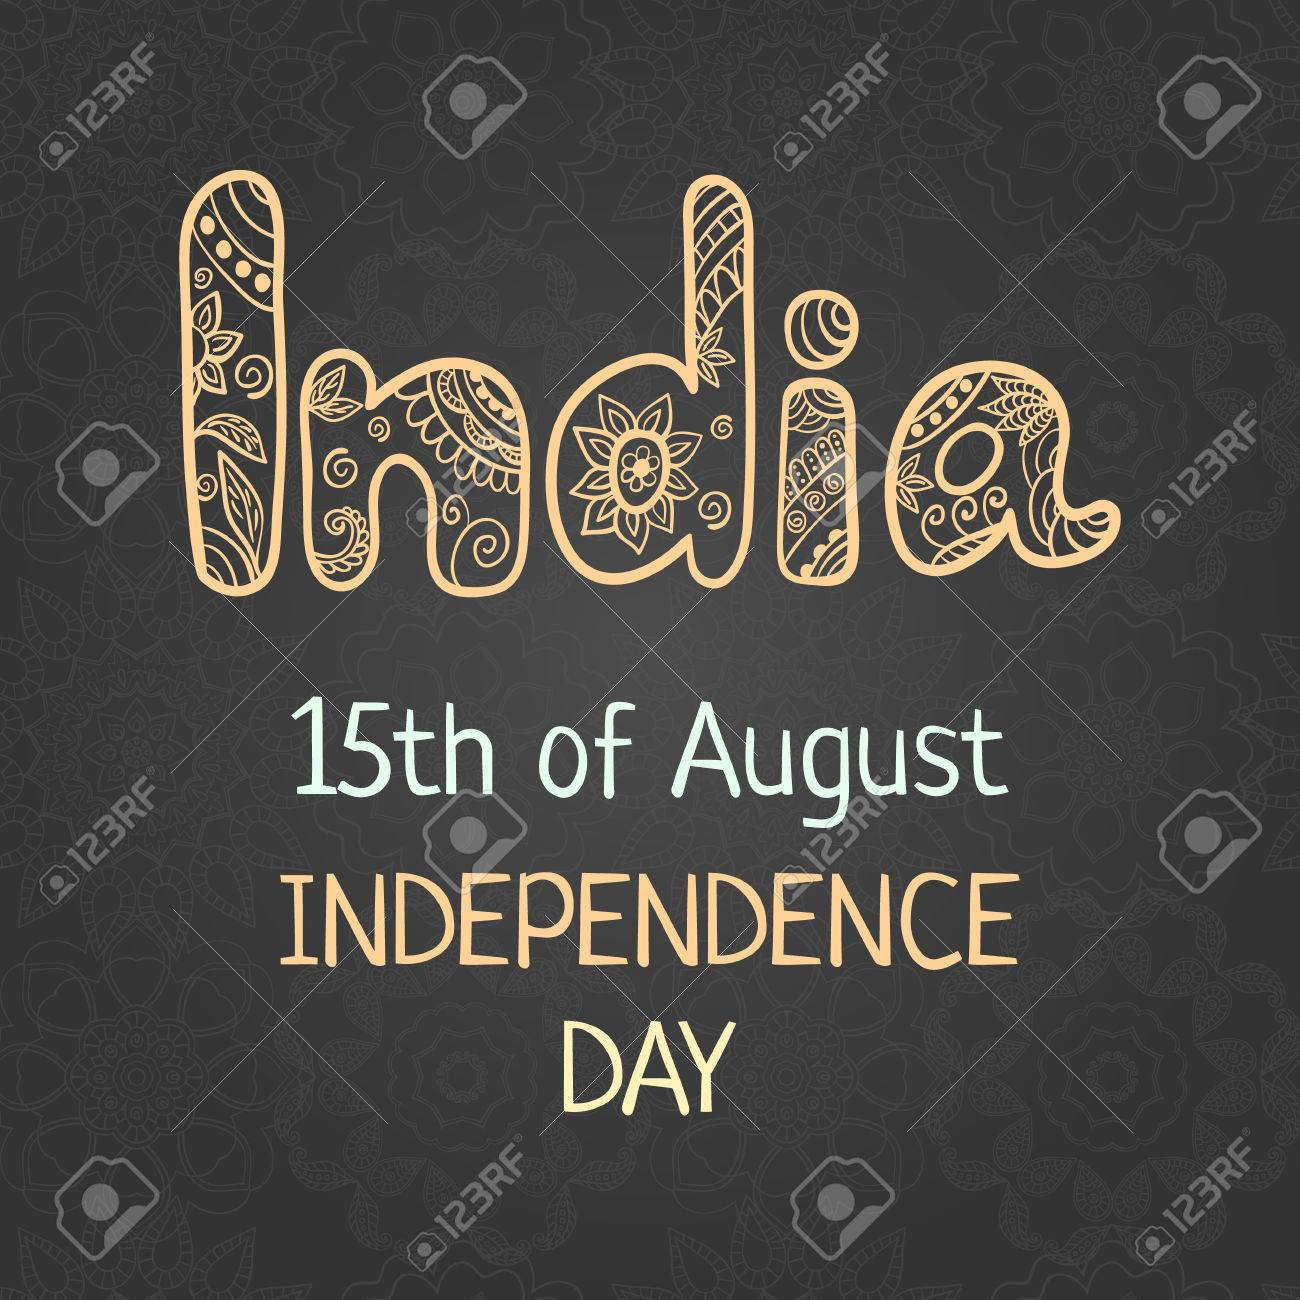 Indian Independence Day 15 August Elegant Greeting Card With Royalty Free Cliparts Vectors And Stock Illustration Image 59253004